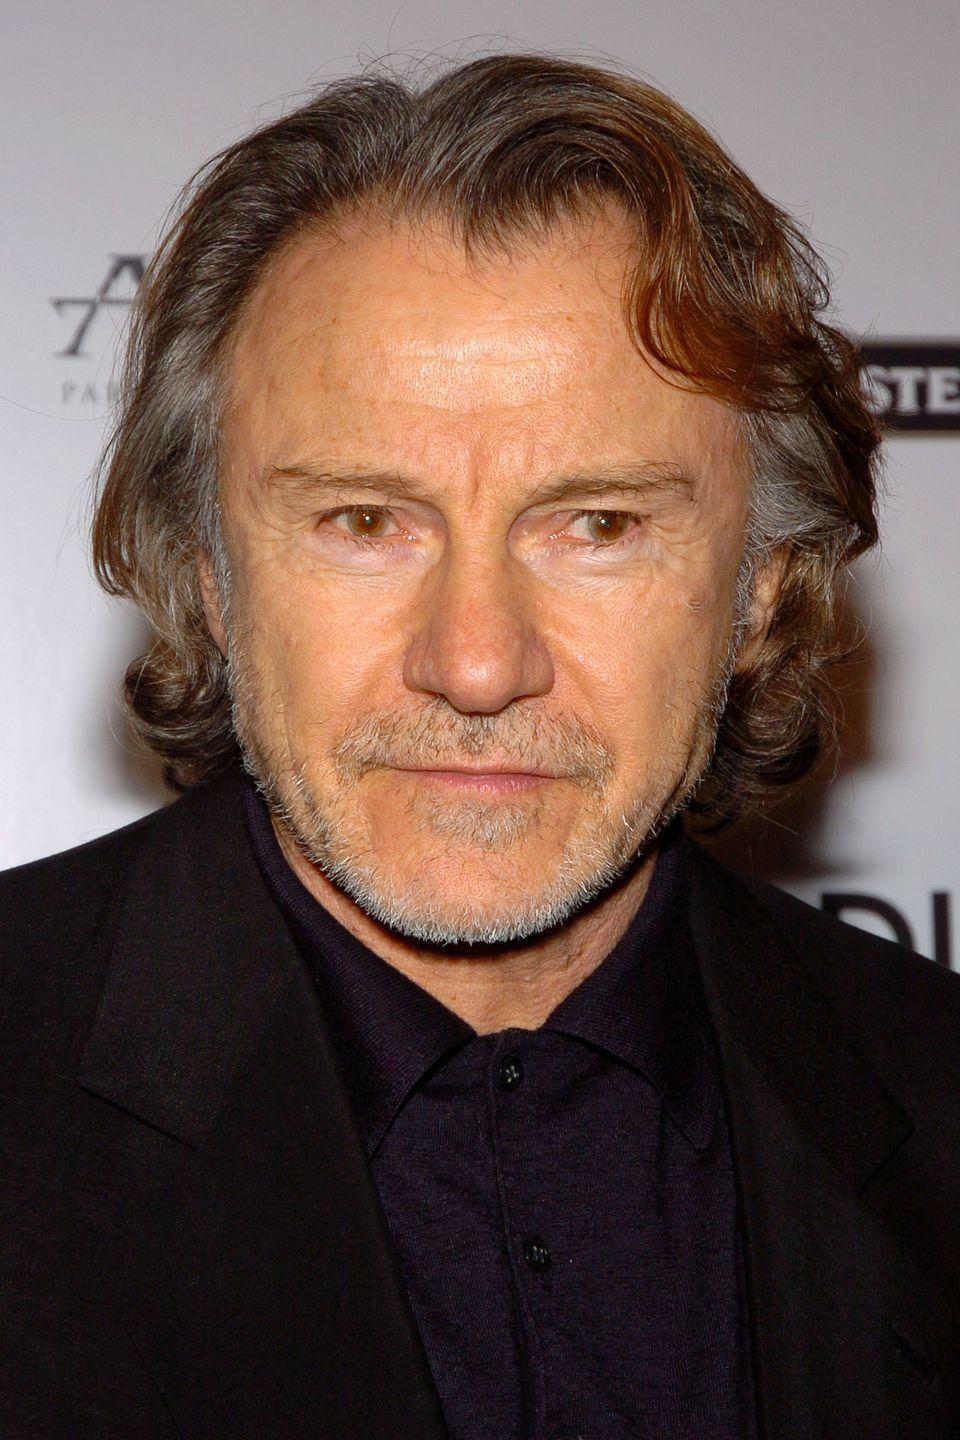 <p>Keitel's eyes may look one color at first glance, but they're actually hazel with very dark brown inner rings around the pupils.</p>